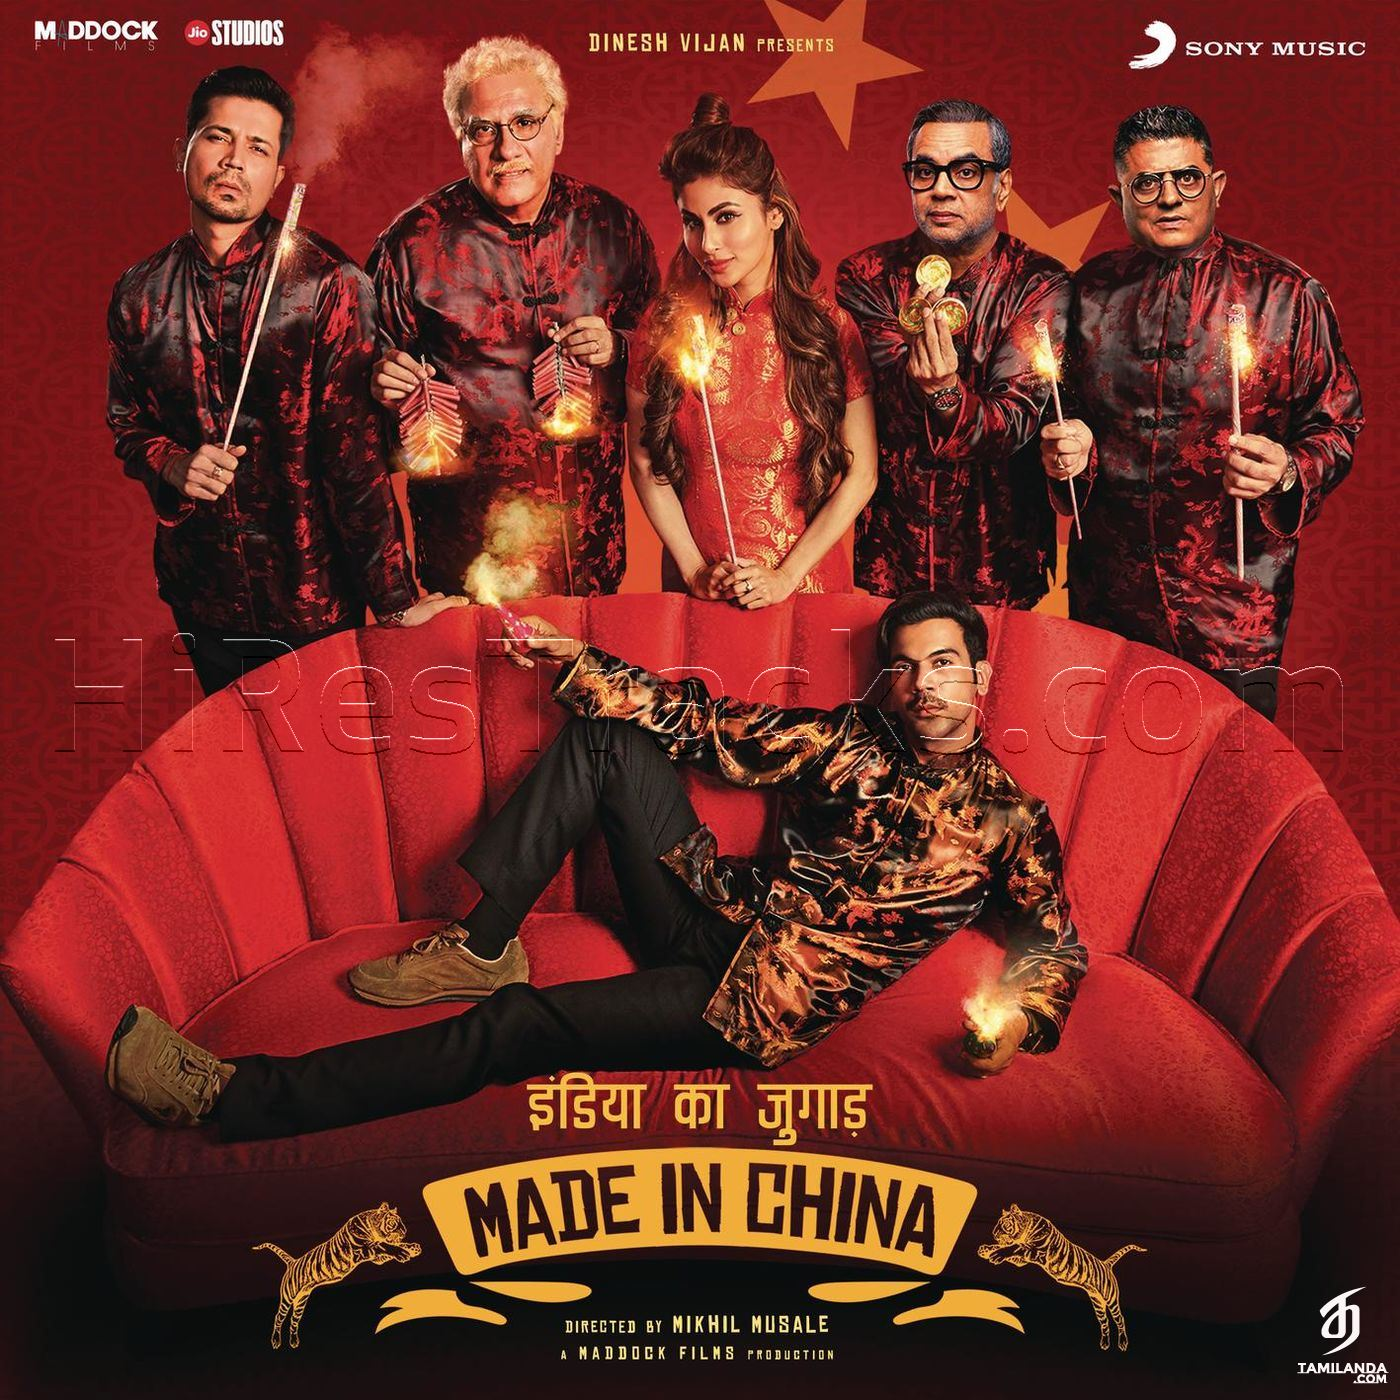 Made in China (2019) (Sachin-Jigar) (Sony Music) [Digital-DL-FLAC].zip